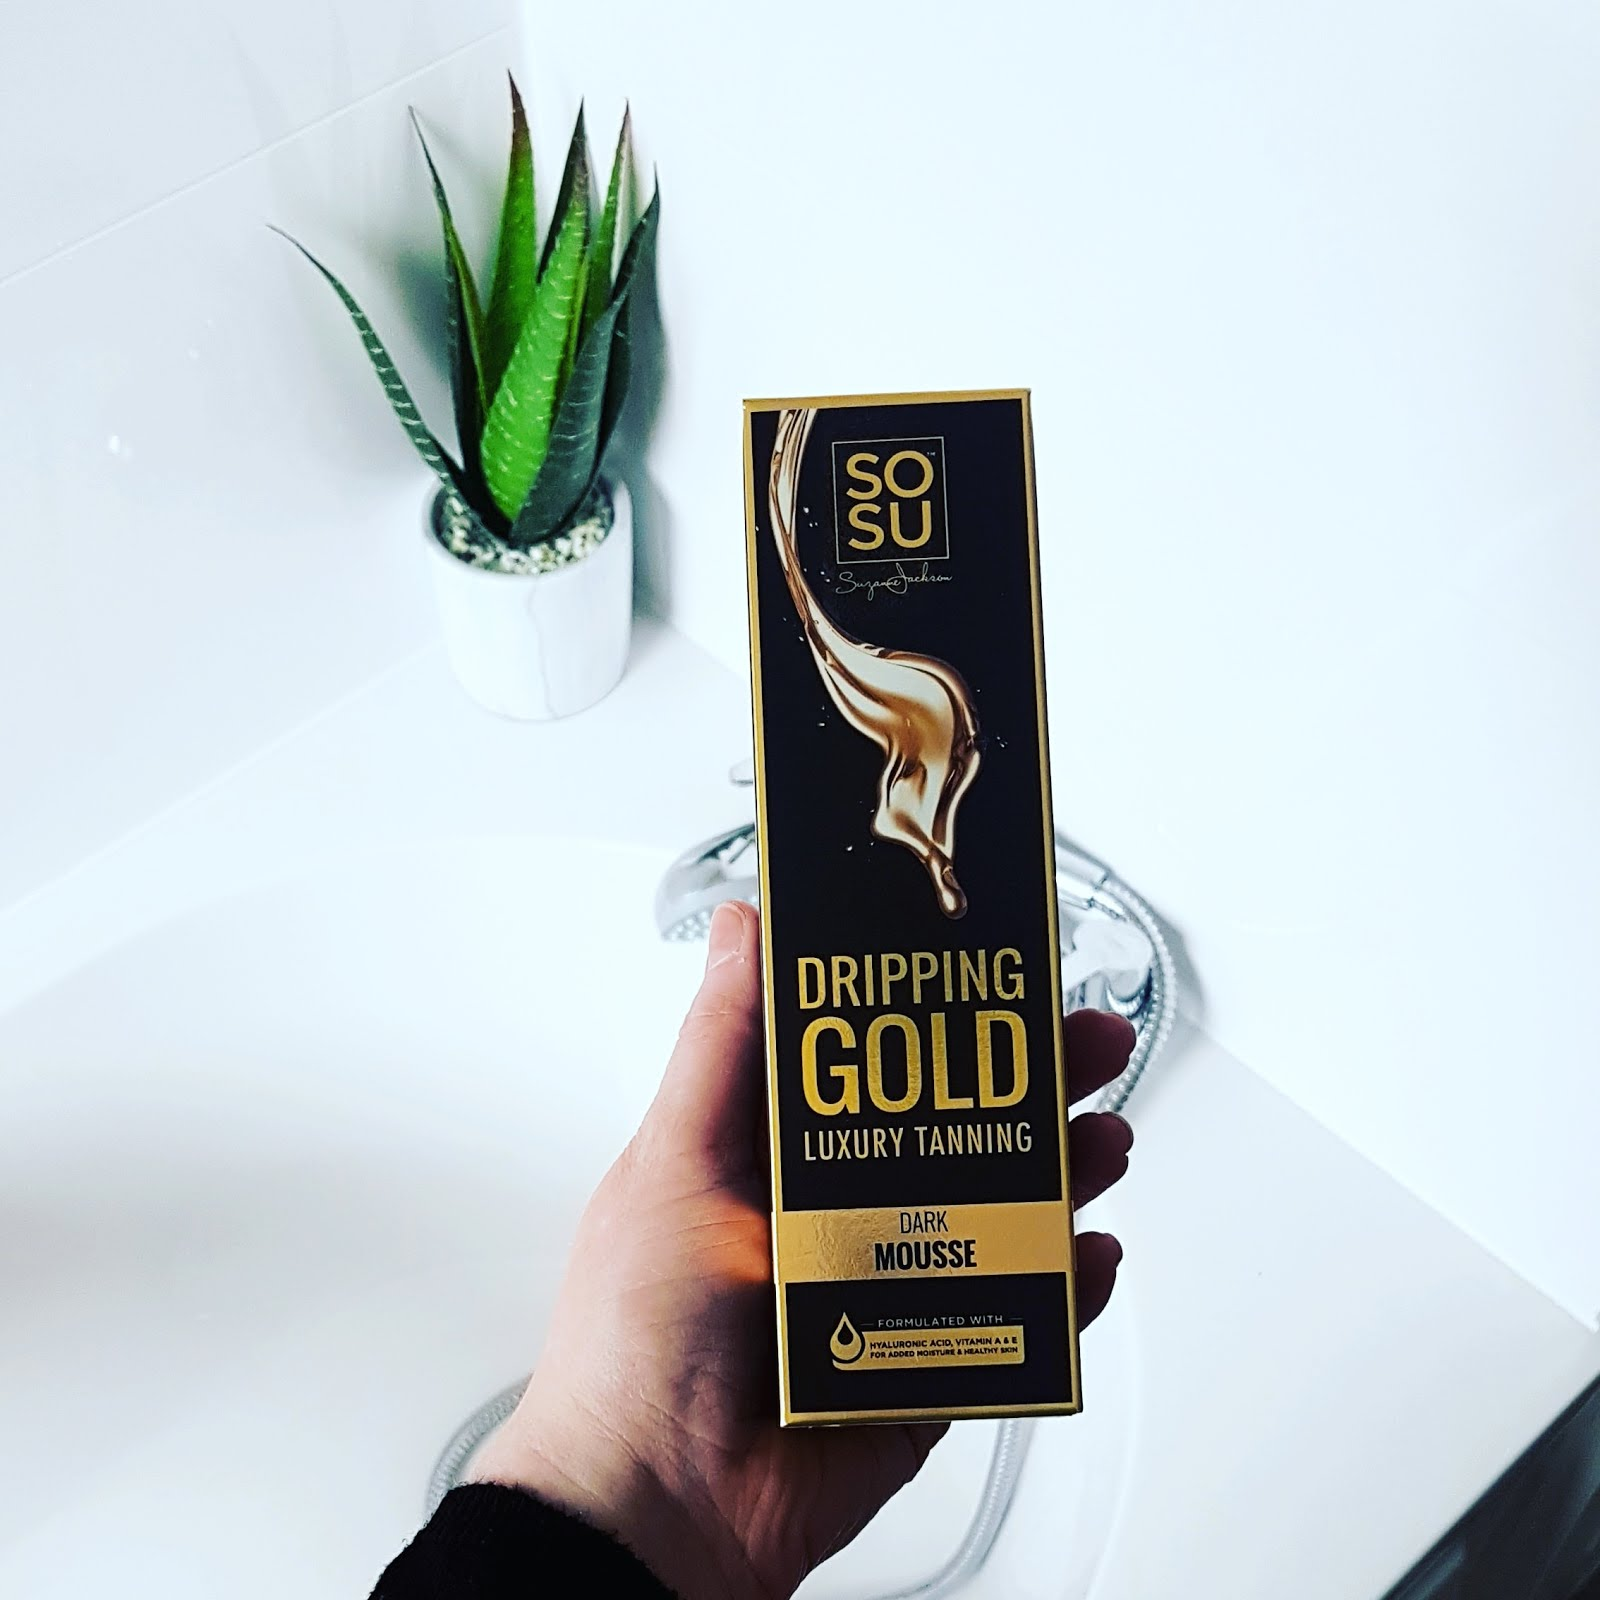 dc7f4054206 SoSu Dripping Gold Review | The Life and Style of Jen